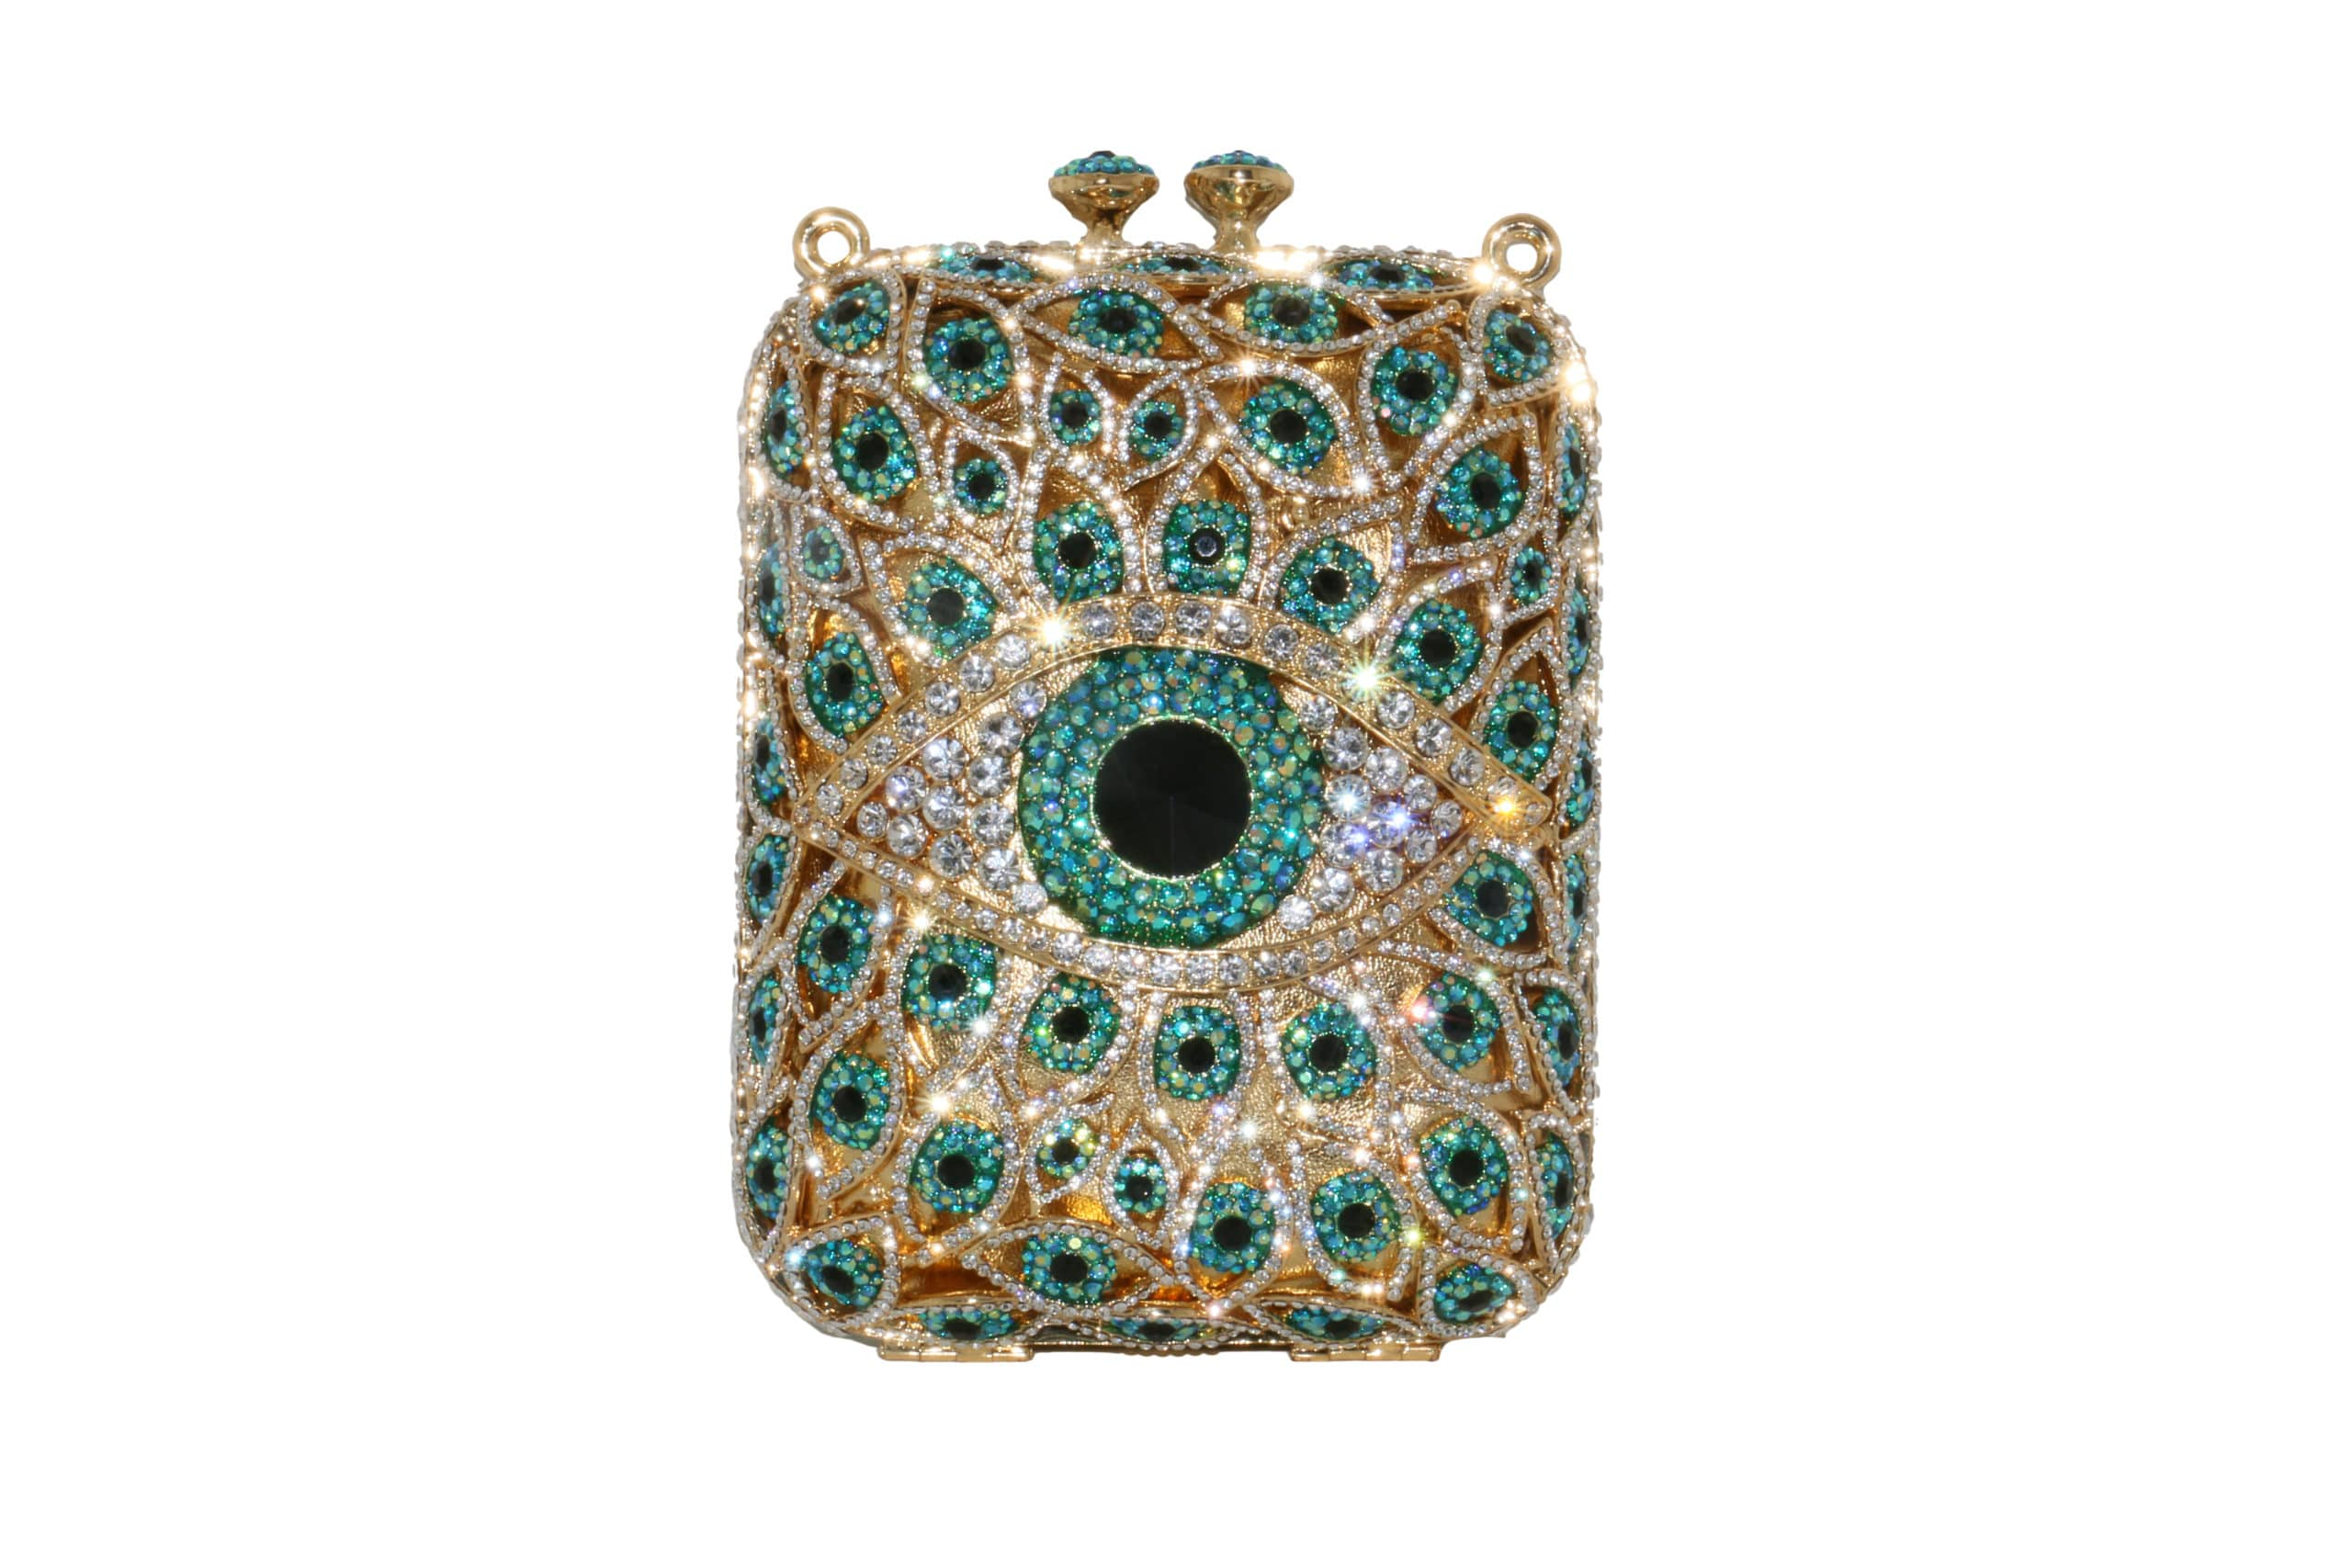 SWAROVSKI CRYSTAL CLUTCH